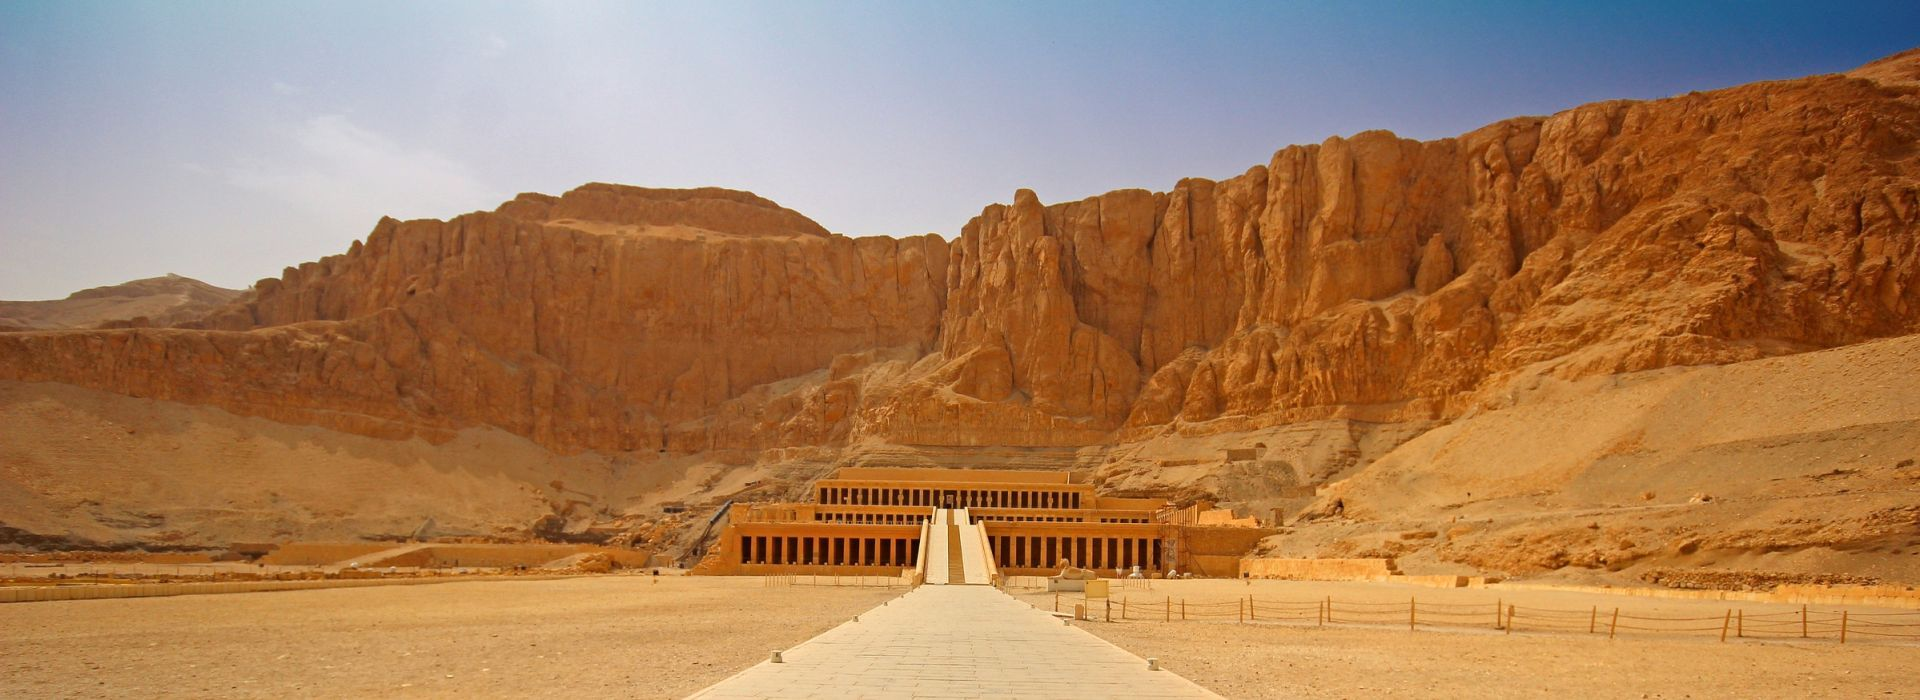 Sightseeing, attractions, culture and history Tours in Hurghada